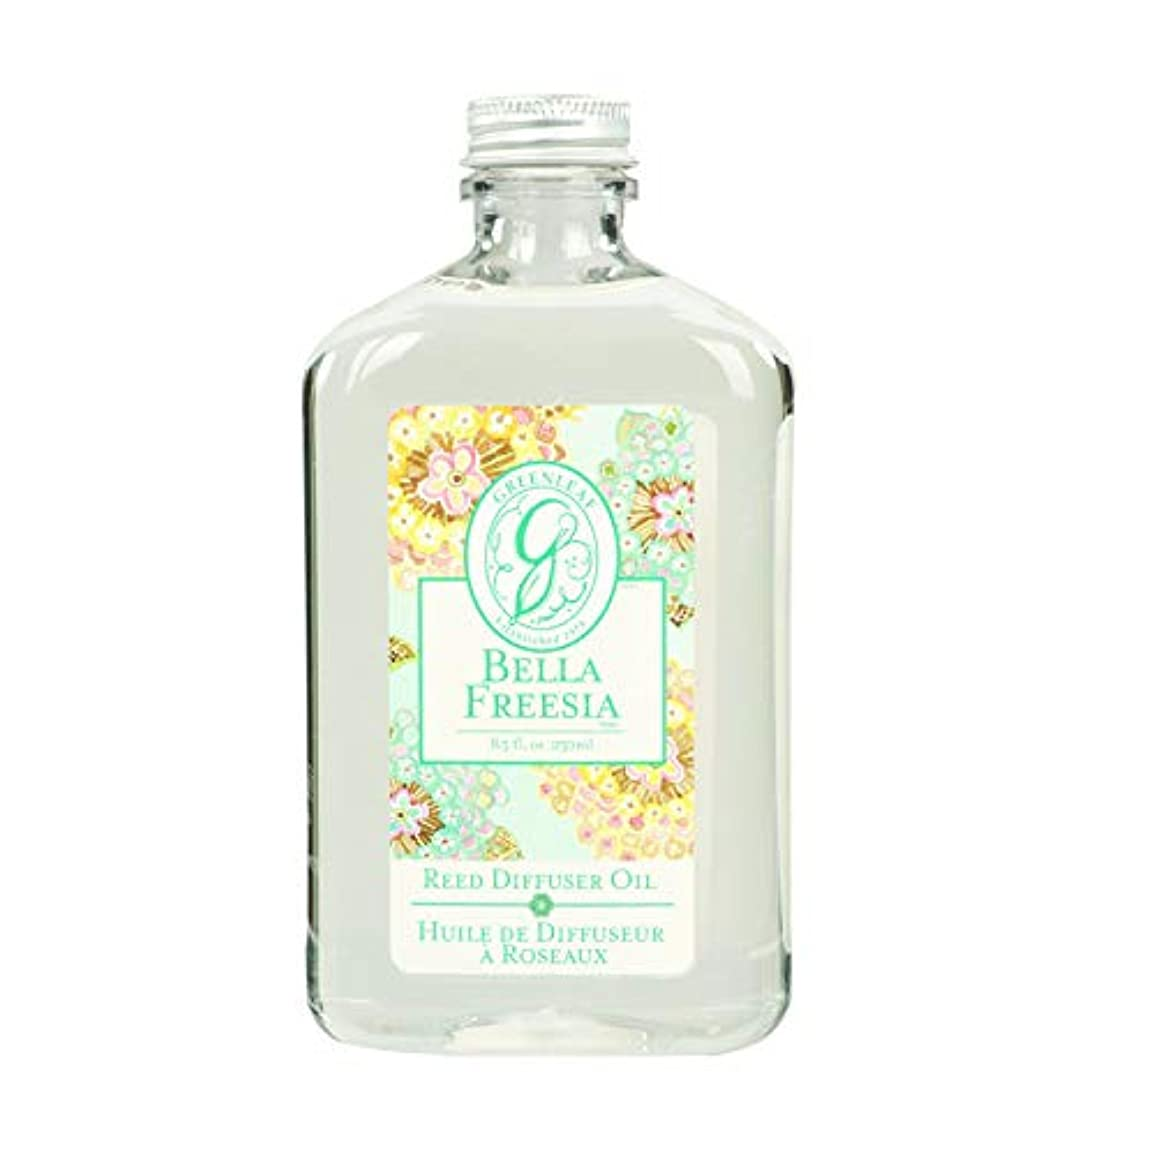 目の前のブロンズうるさいGREEN LEAF REED DIFFUSER OIL REFILL BELLA FREESIA